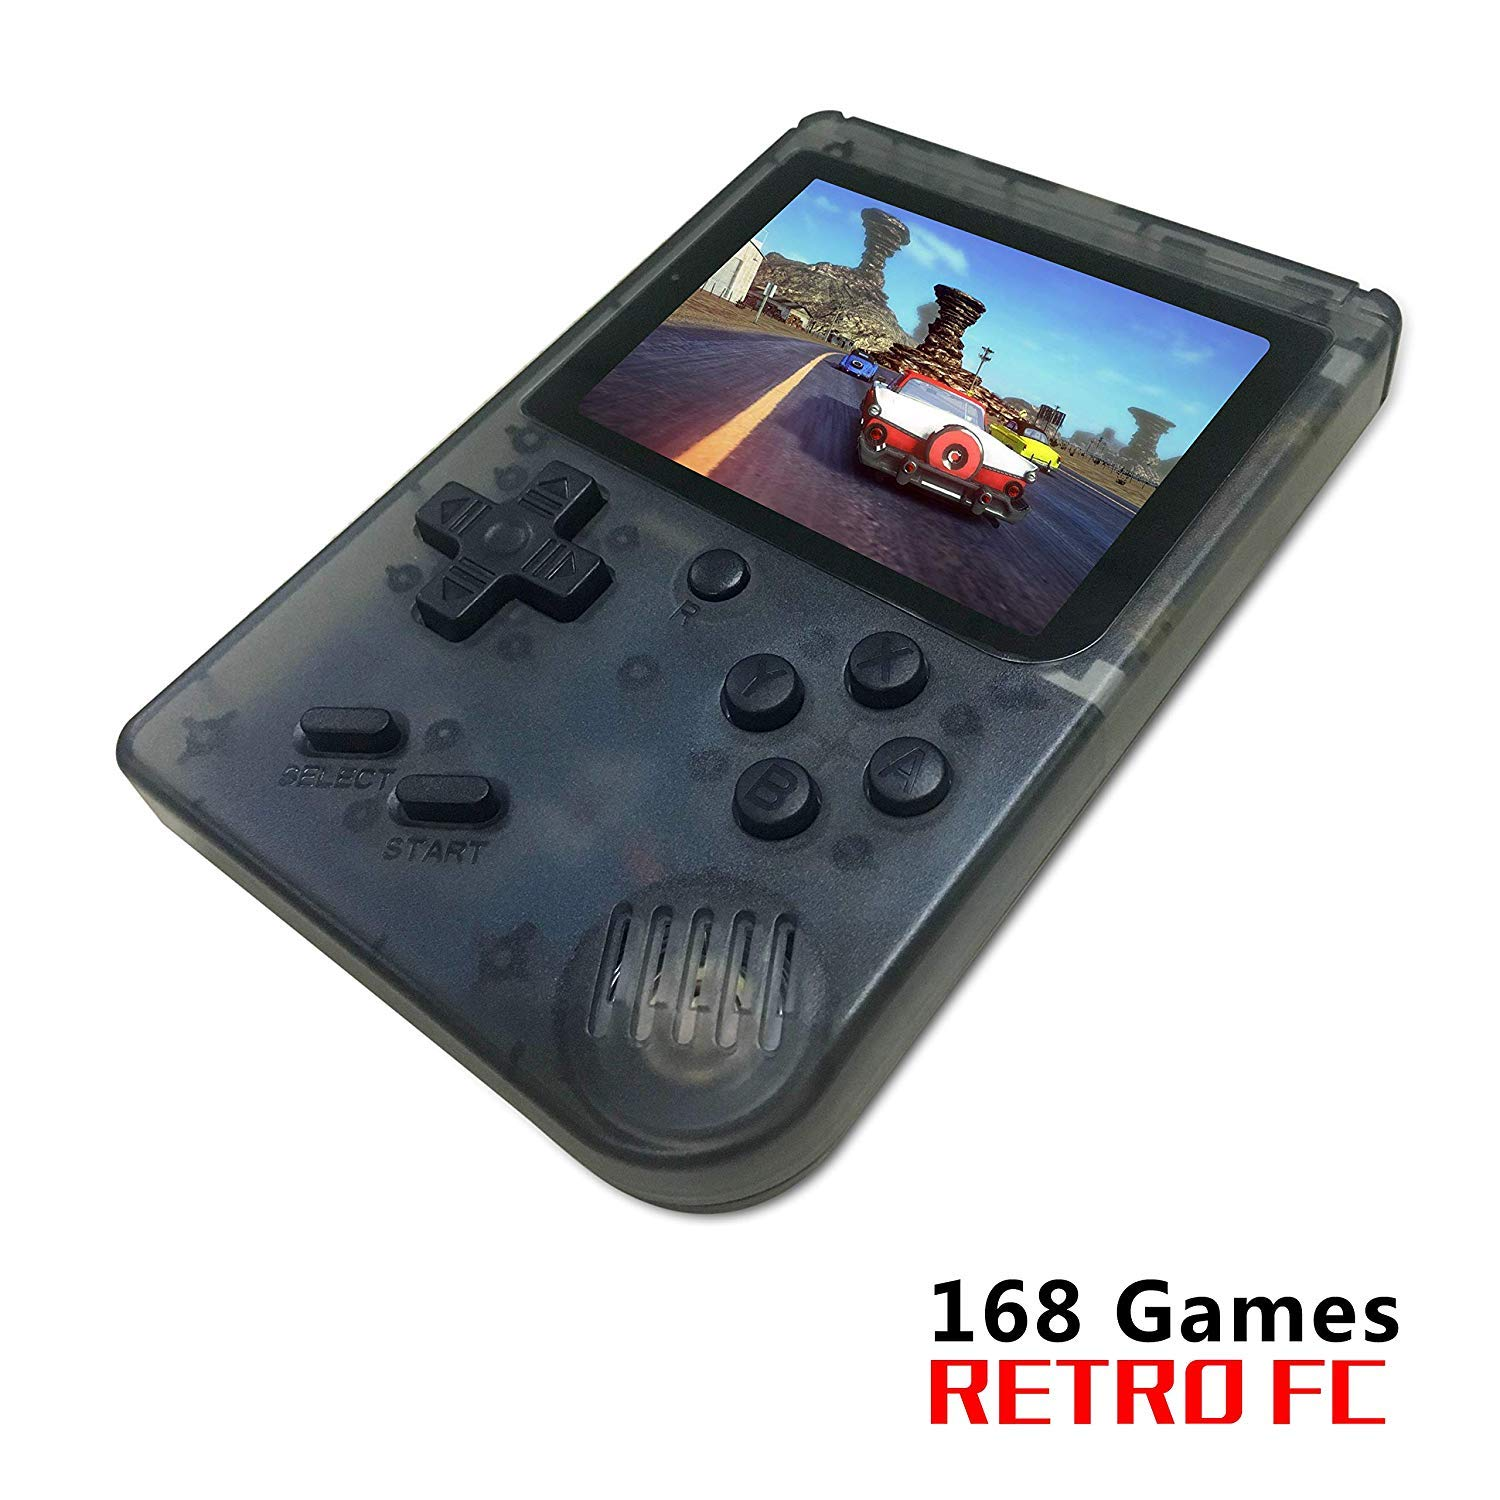 FLYFISH Retro Handheld Game Console,Portable FC Game Console 3 Inch 168 Classic Games , Birthday Present for Children -Transparent Black by FLYFISH (Image #1)